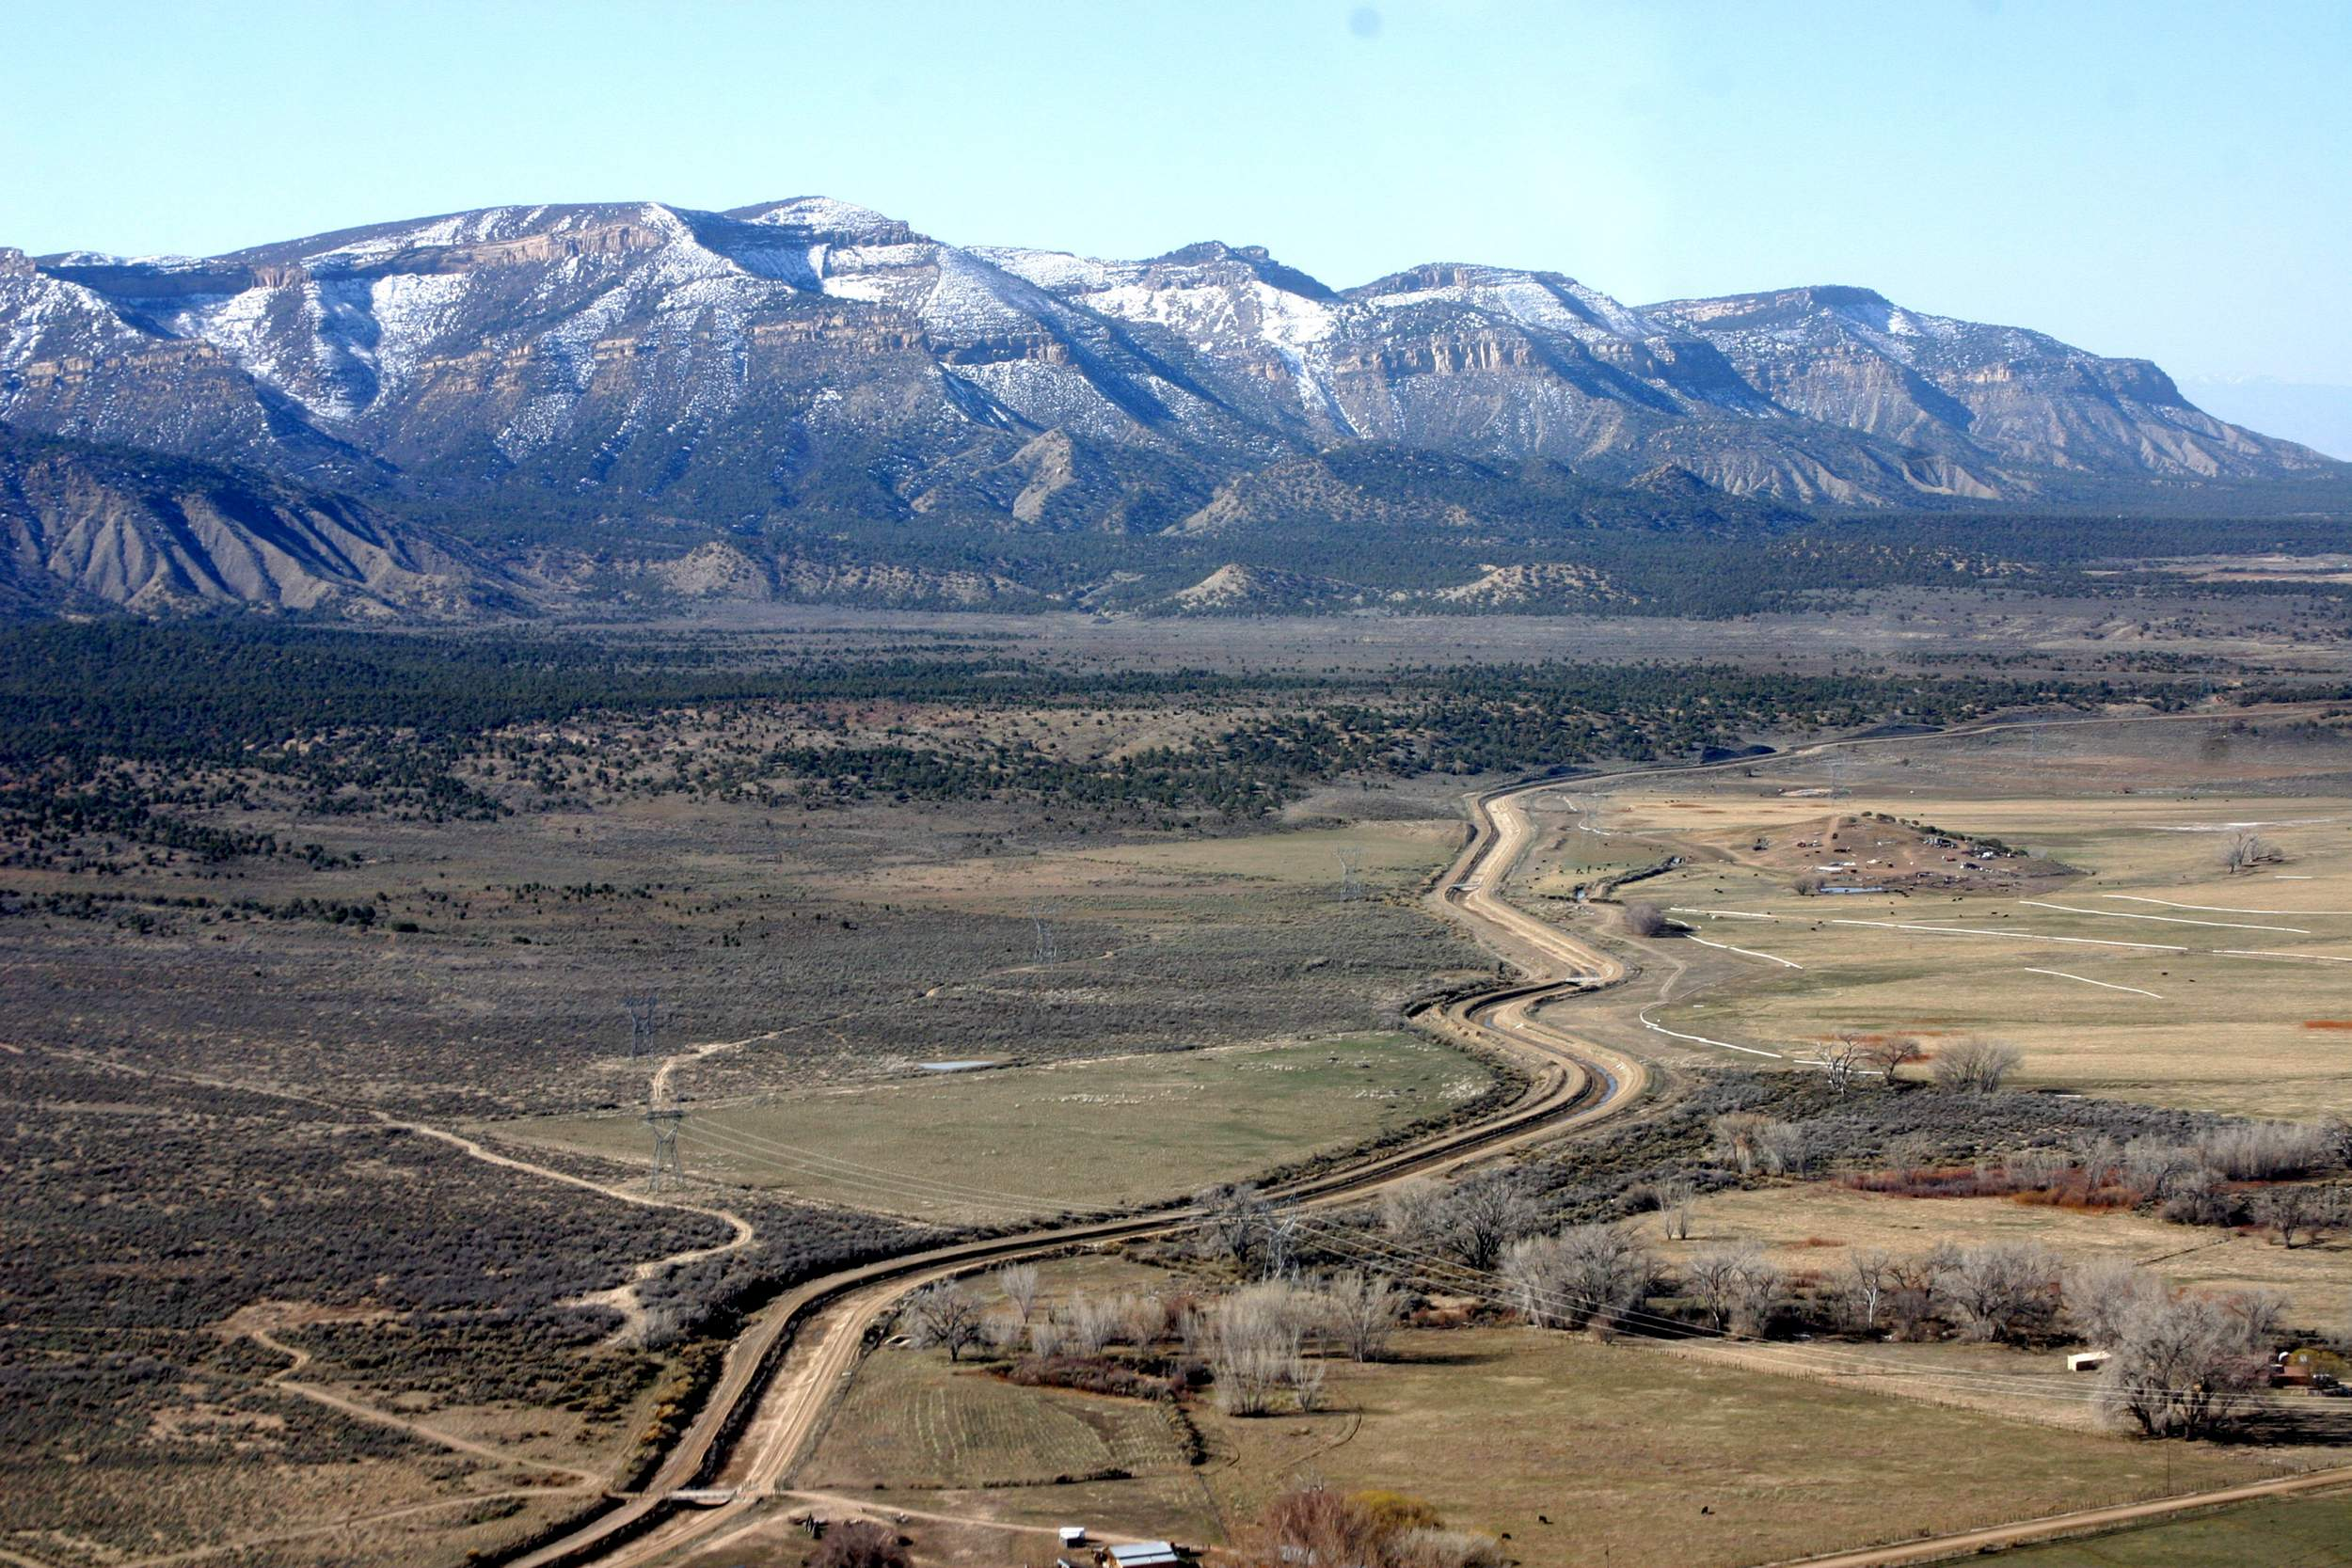 The Master Lease Plan Proposal Includes The Mesa Verde Escarpment, Where No  Surface Drilling Is Allowed. The U.S. Department Of Interior May Rescind  Masster ...